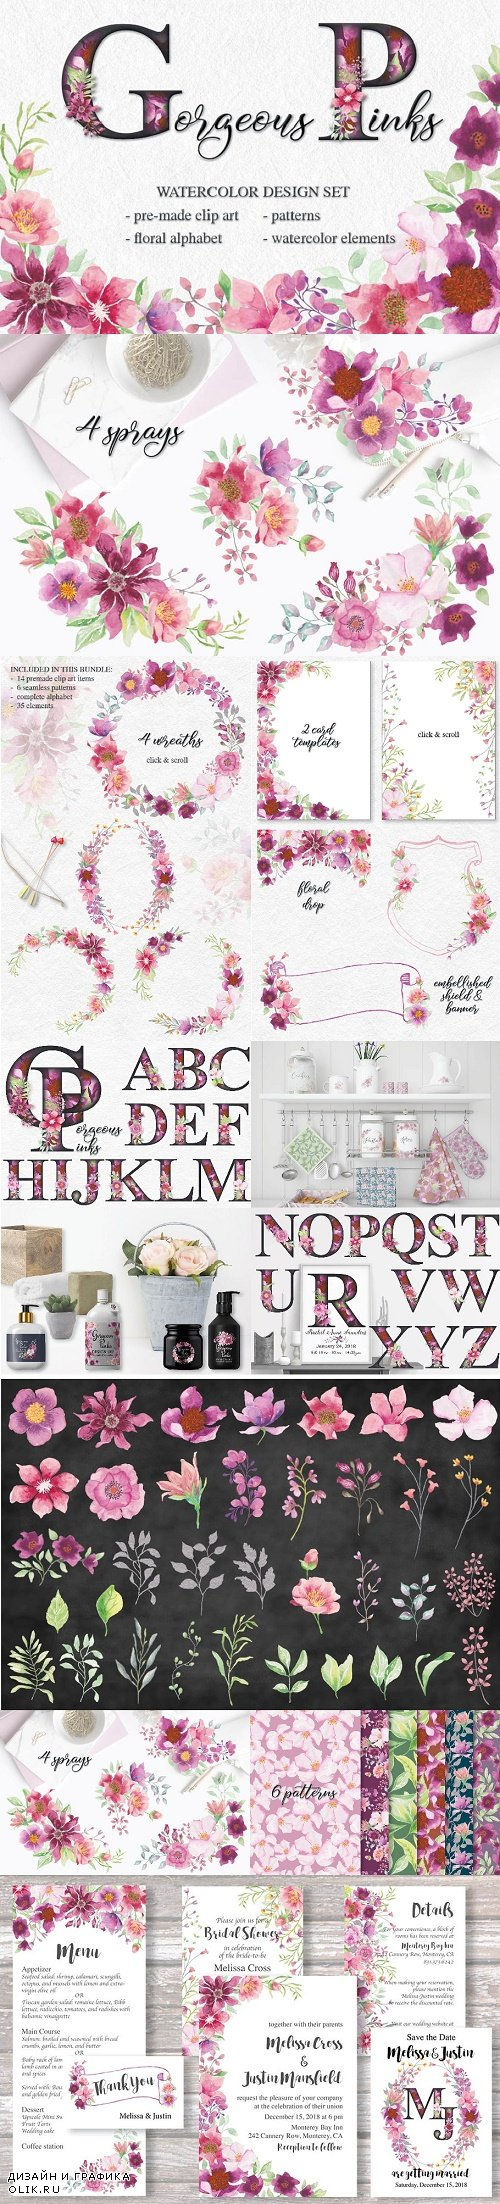 Gorgeous Pinks design set - 2362758